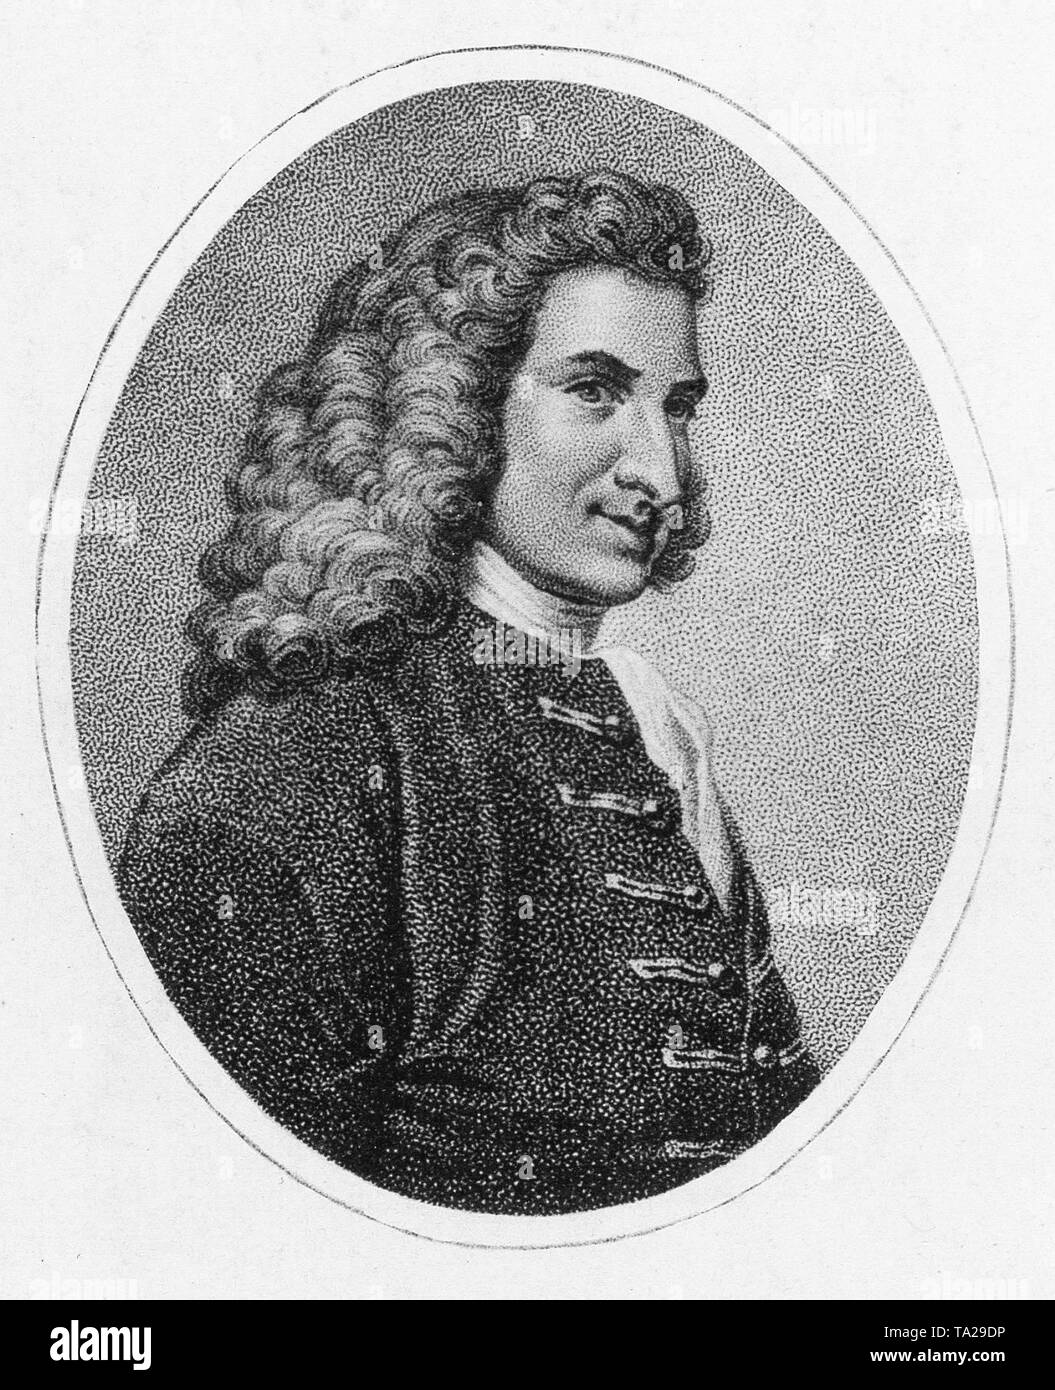 Portrait of English novelist Henry Fielding, circa 1750 - Stock Image